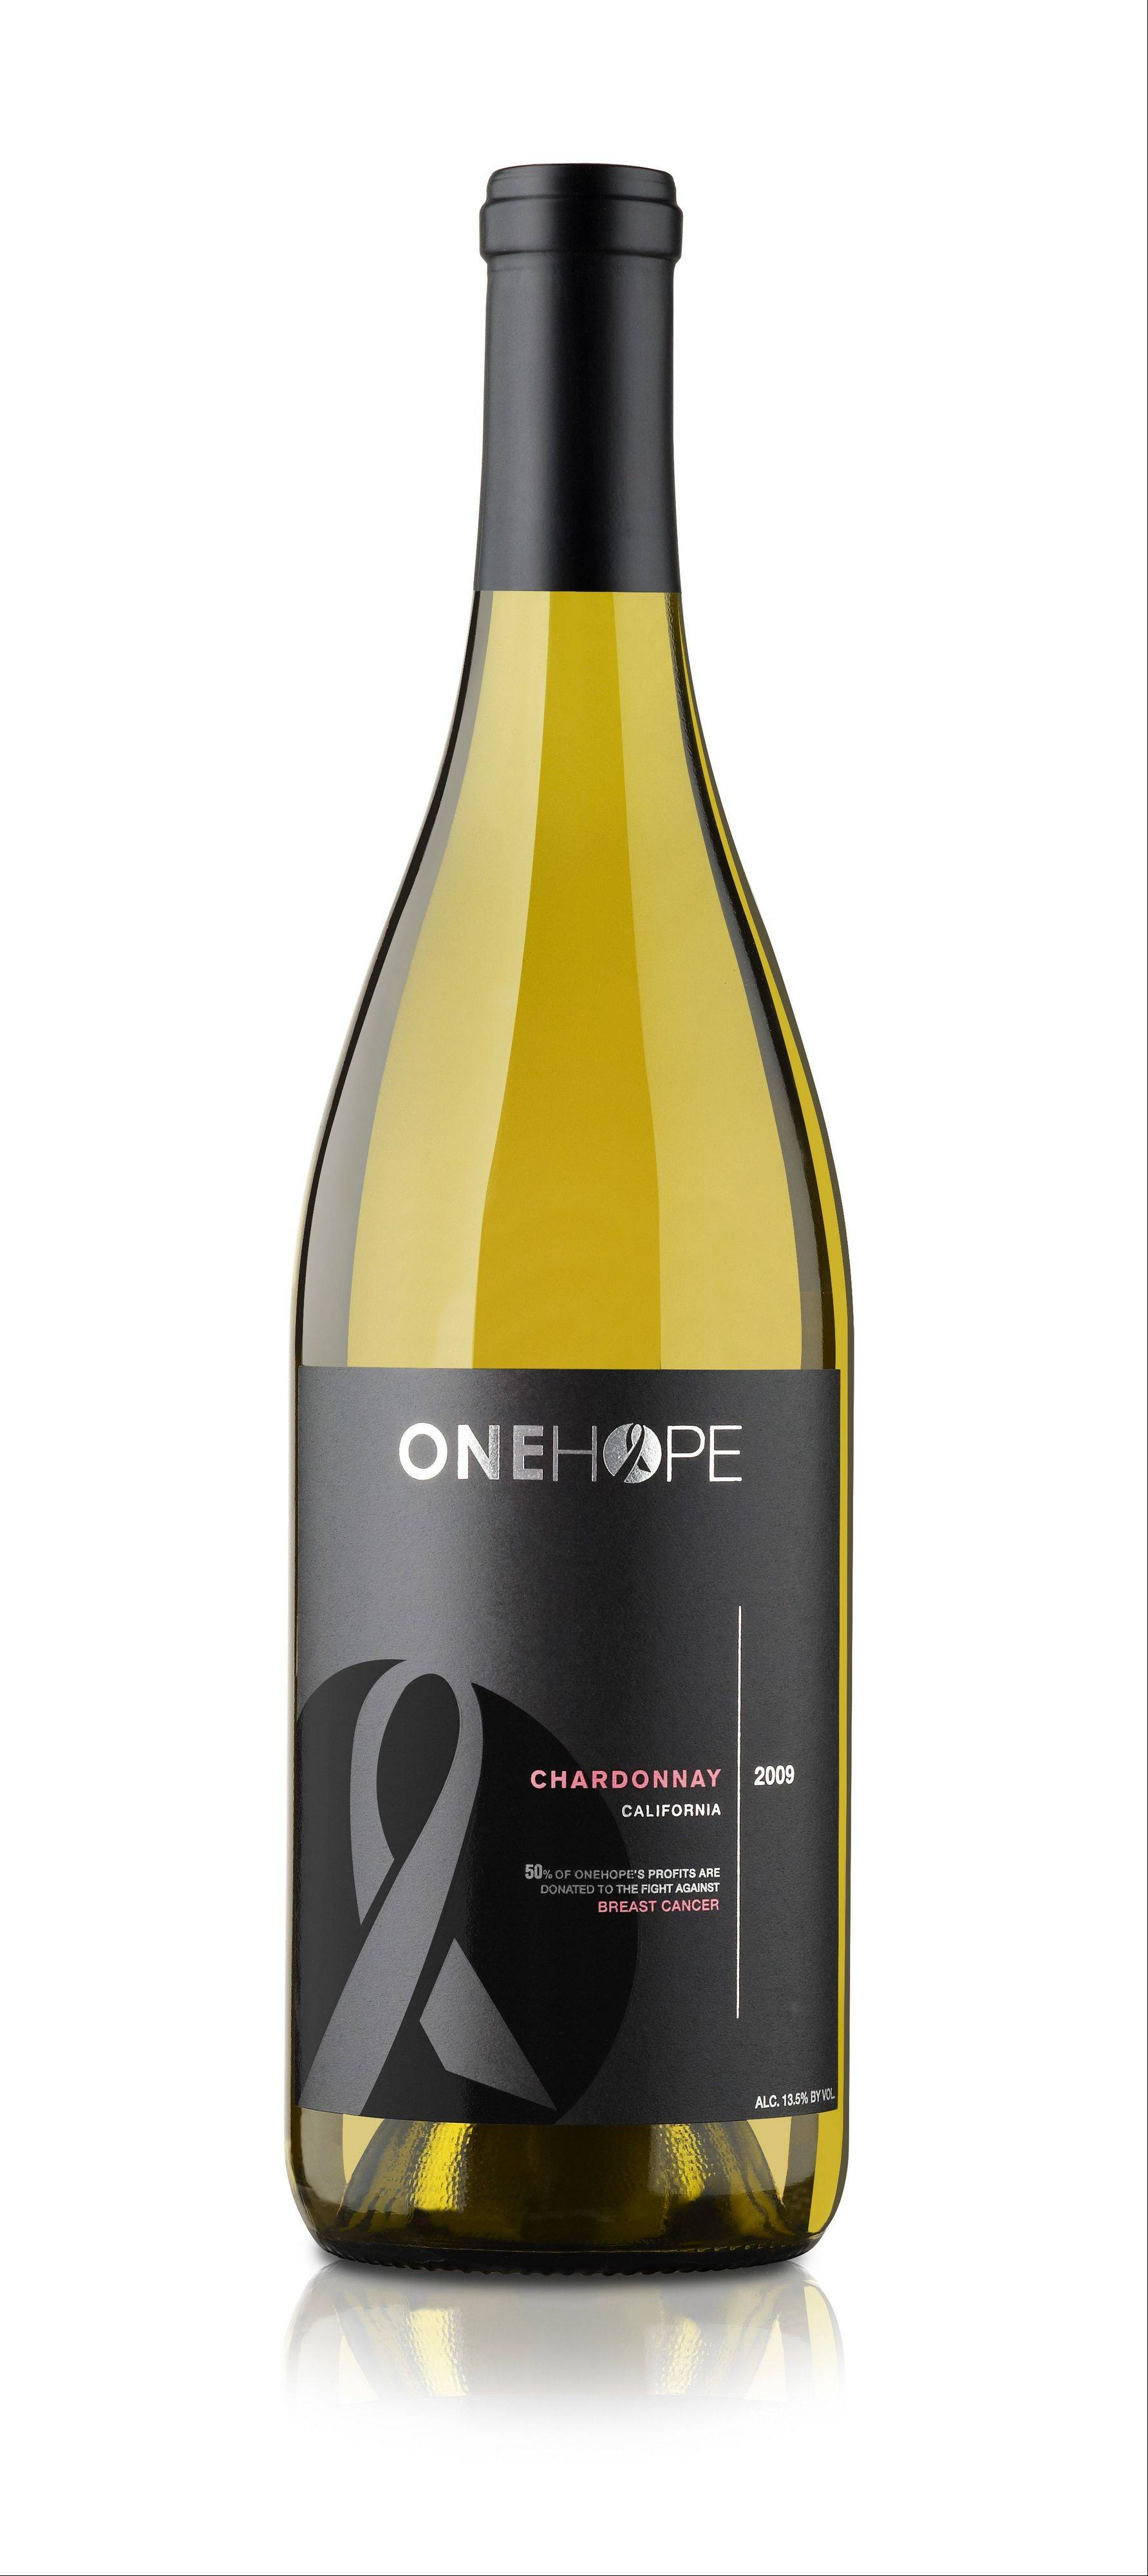 ONEHOPE Chardonnay is Mary Ross' wine of the week.